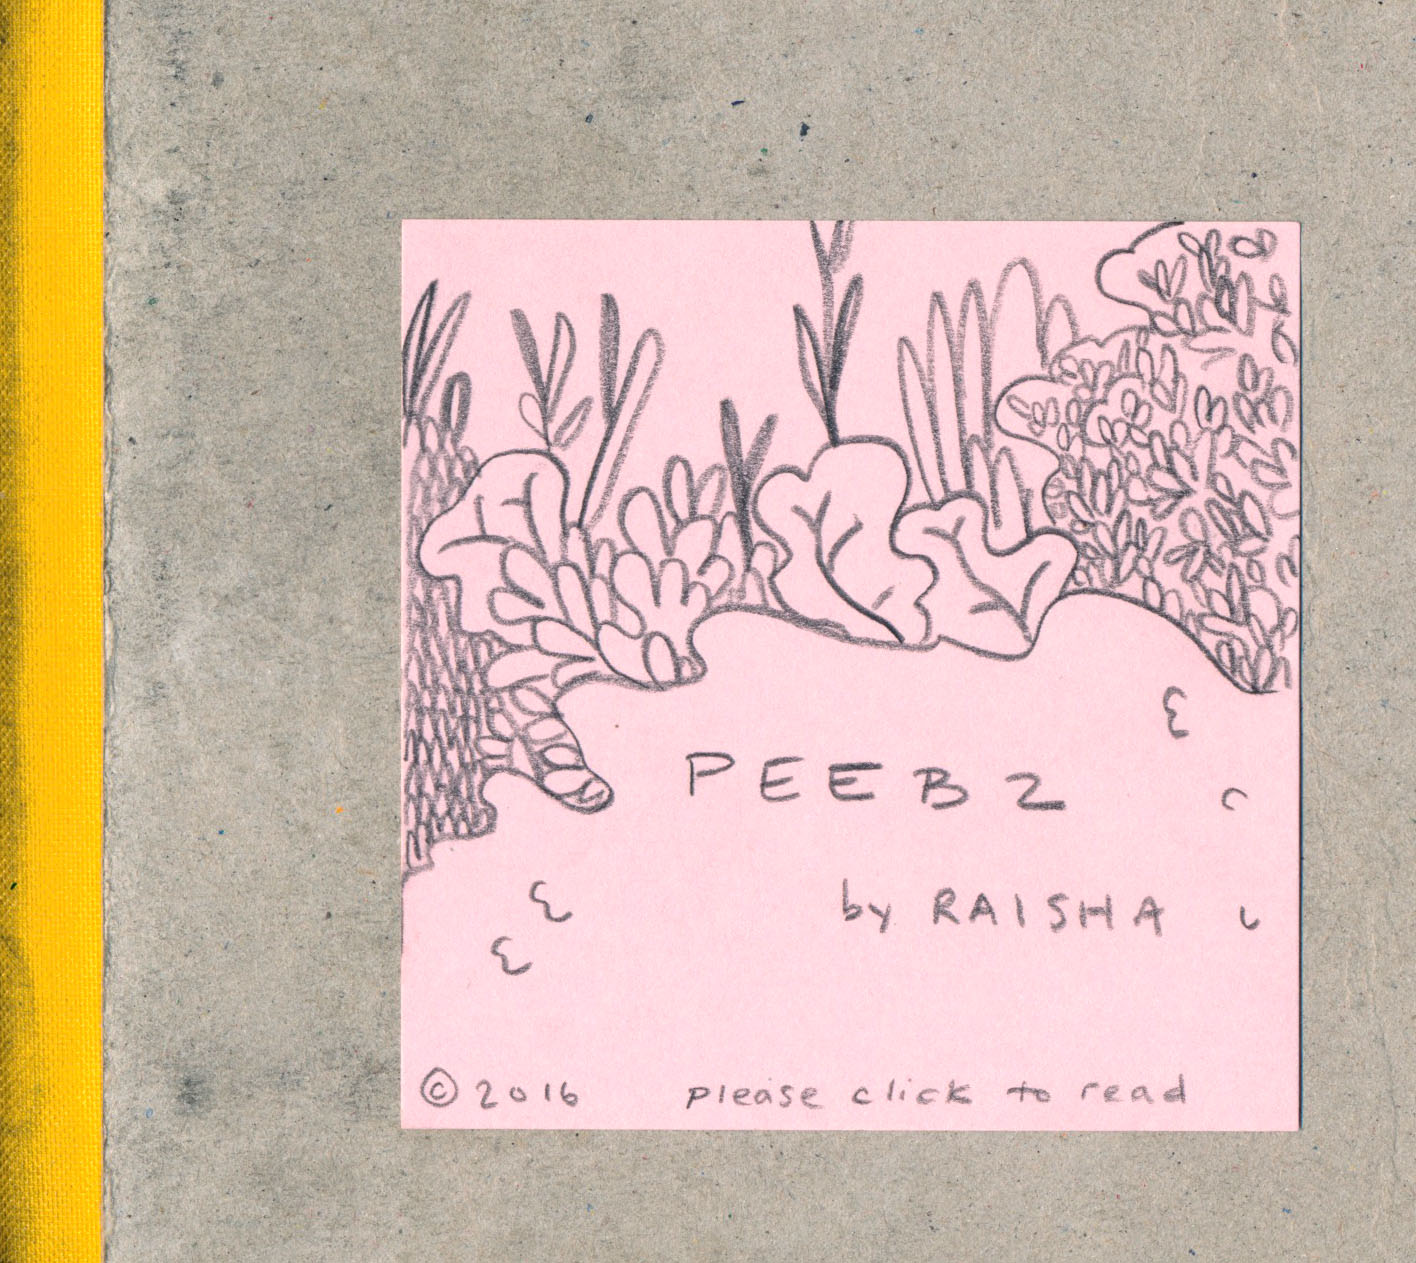 sketchbook_2016_Peebz post it title.jpg